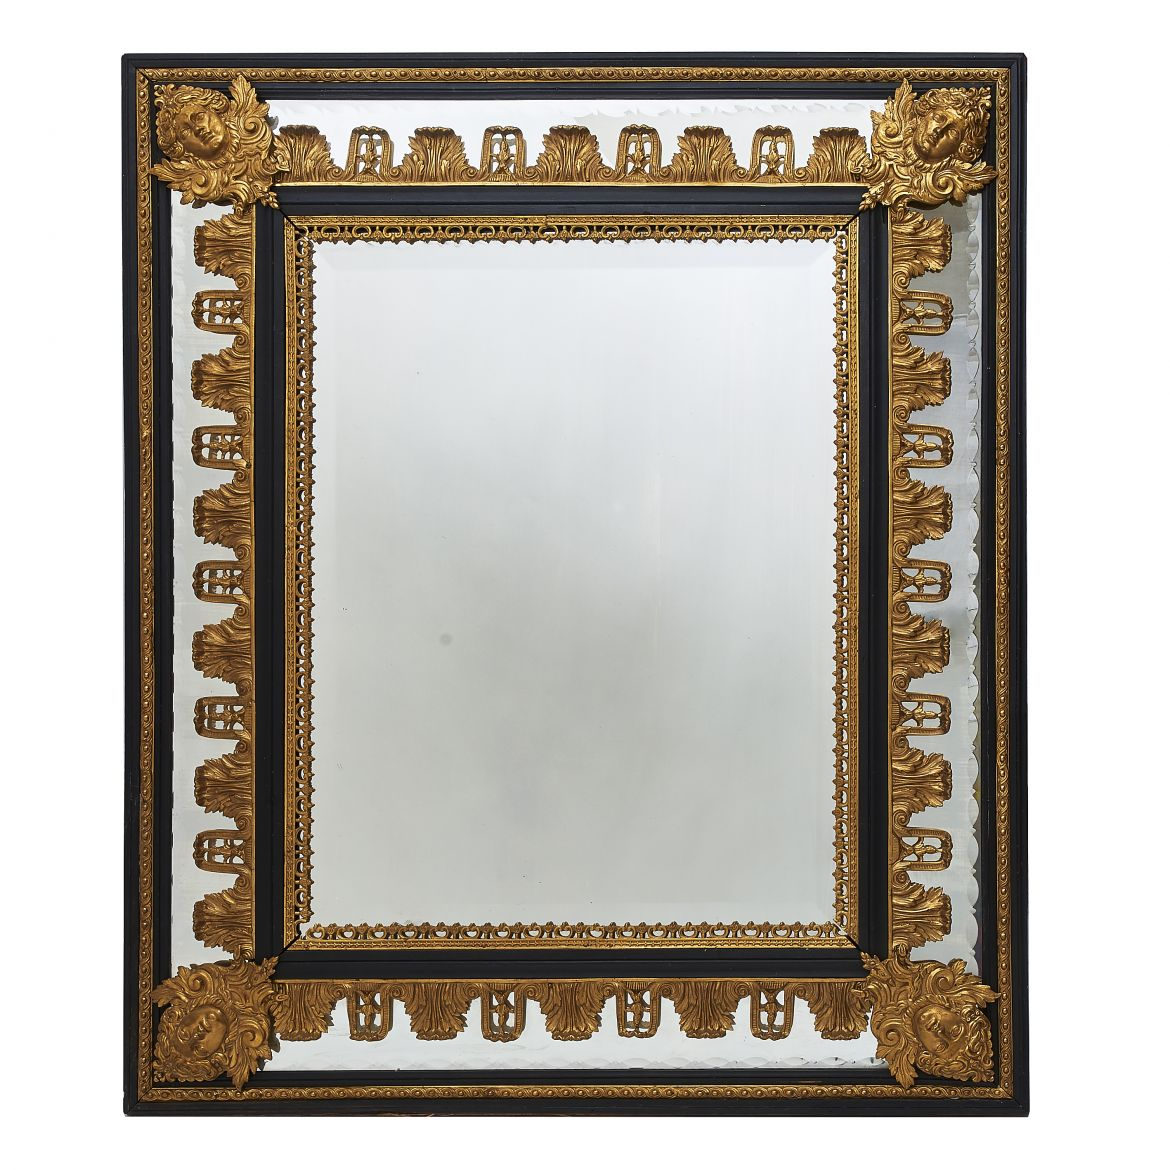 French Ormolu Mounted Cushion Mirror